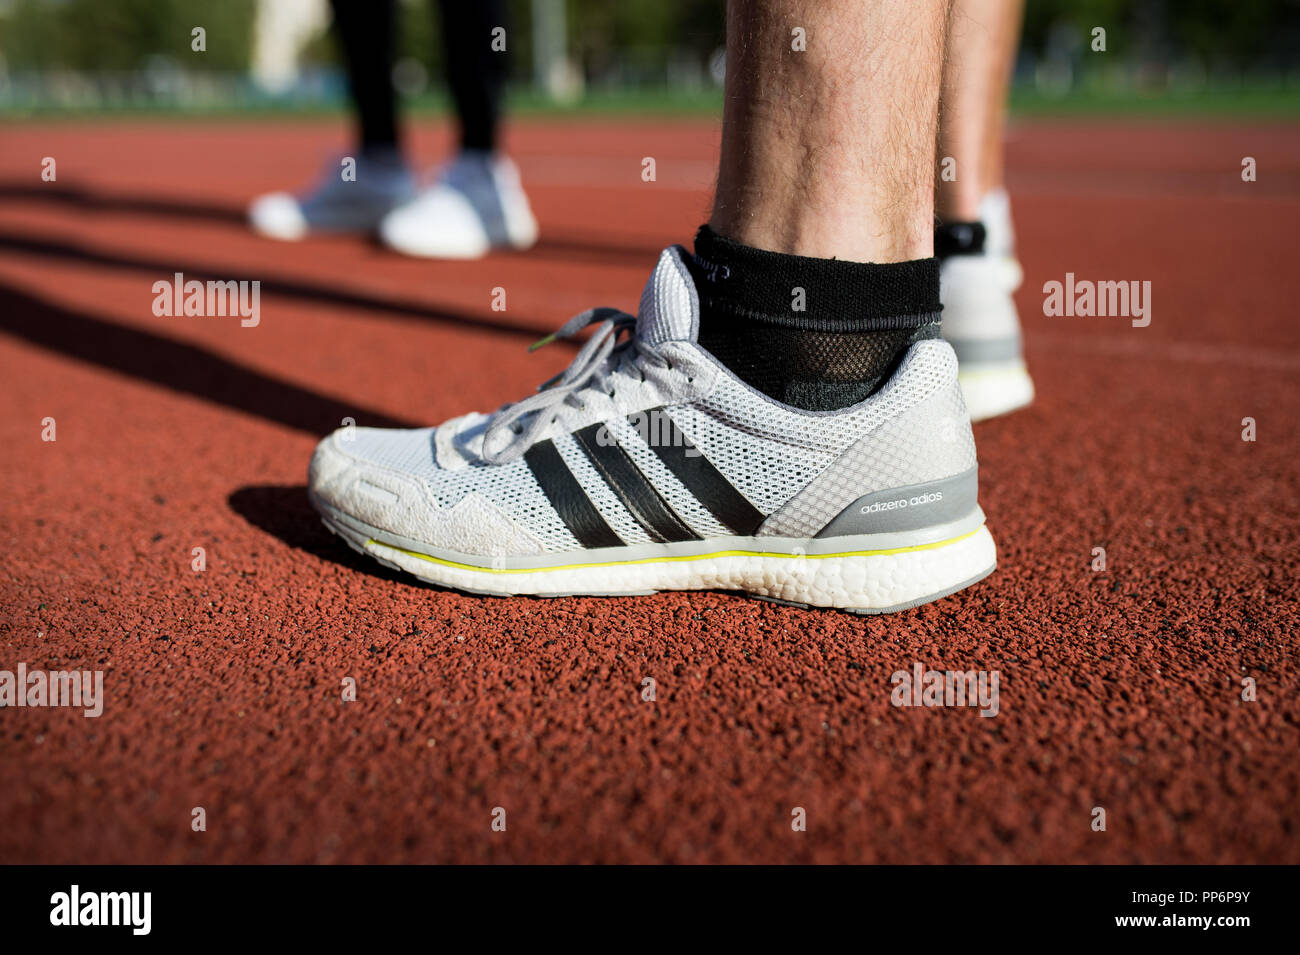 Running: Adidas running shoes on a